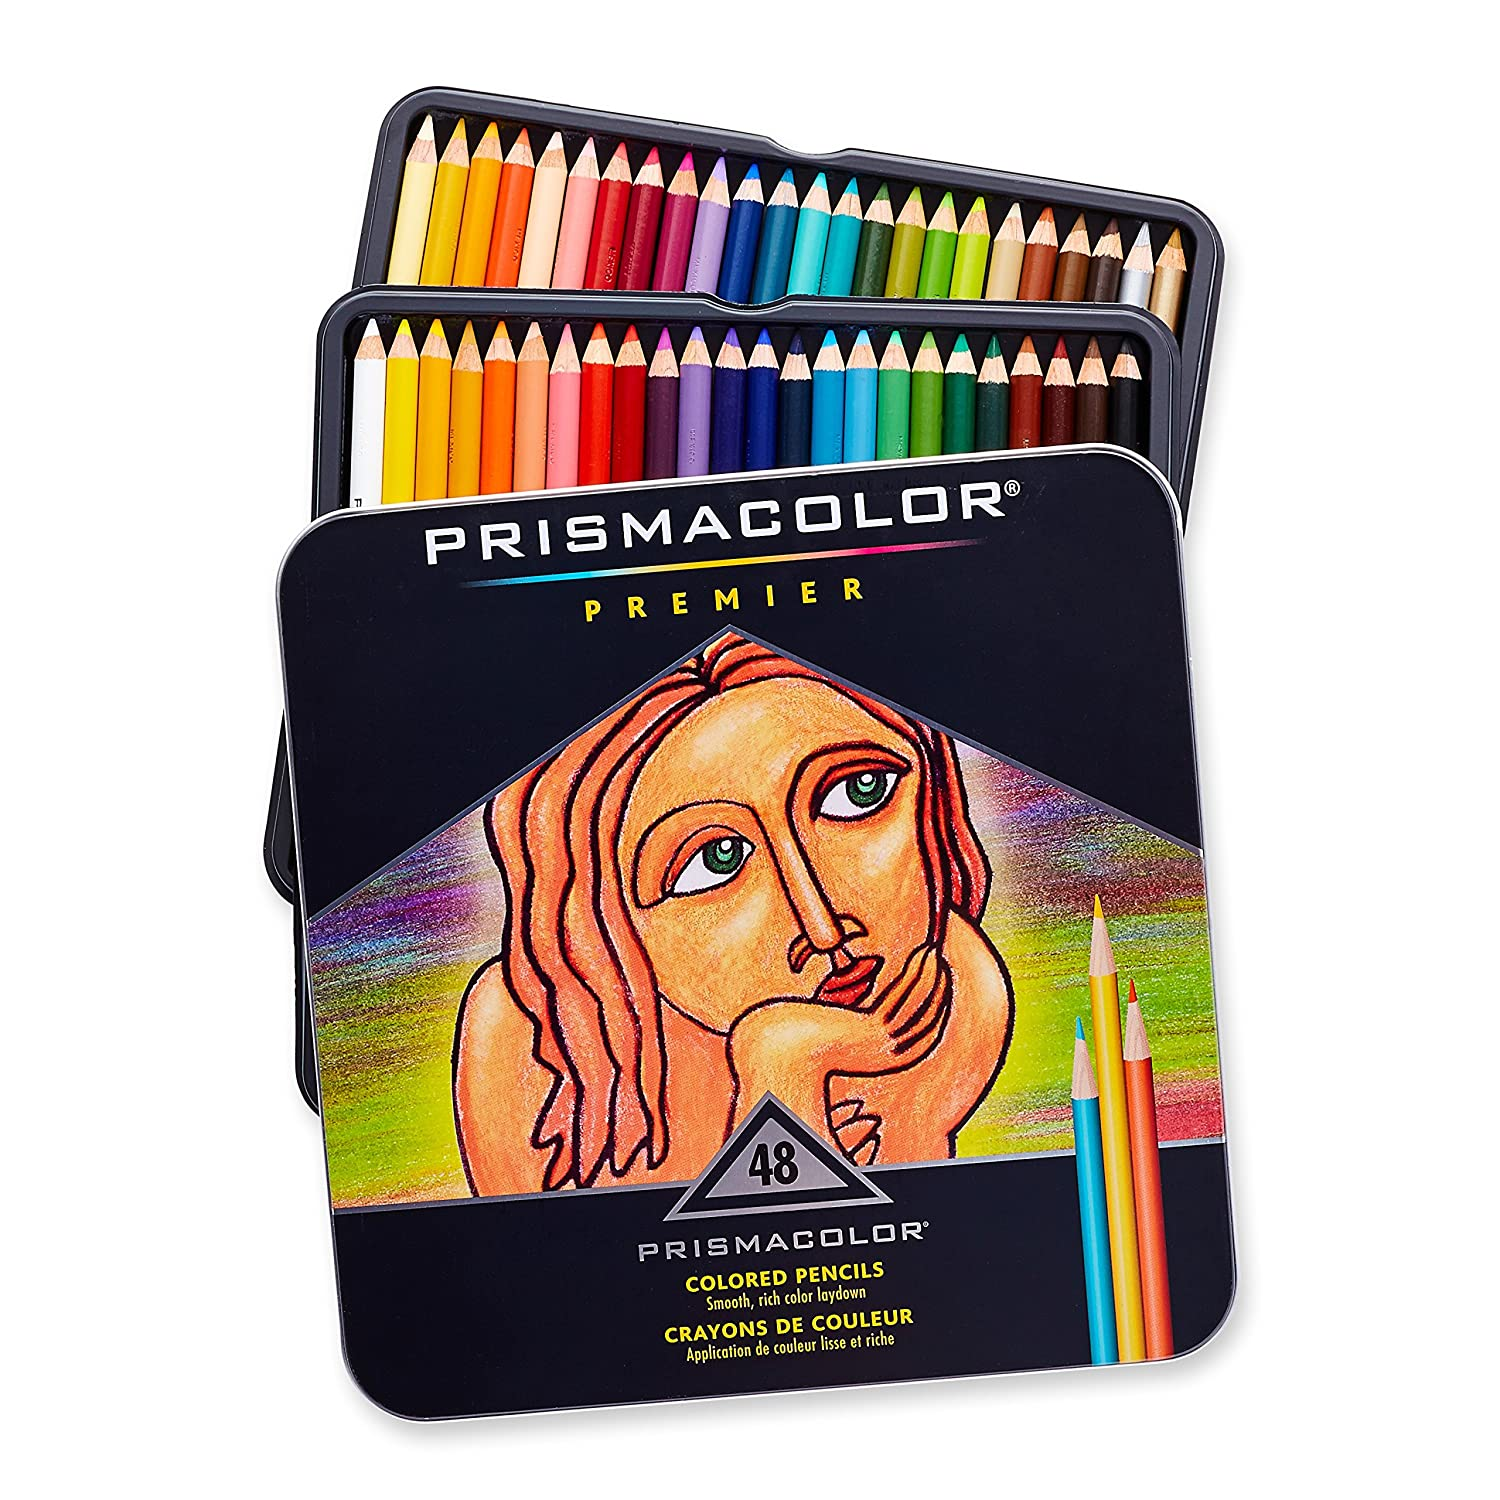 Prismacolor Premier 48 Soft Core Colored Pencils